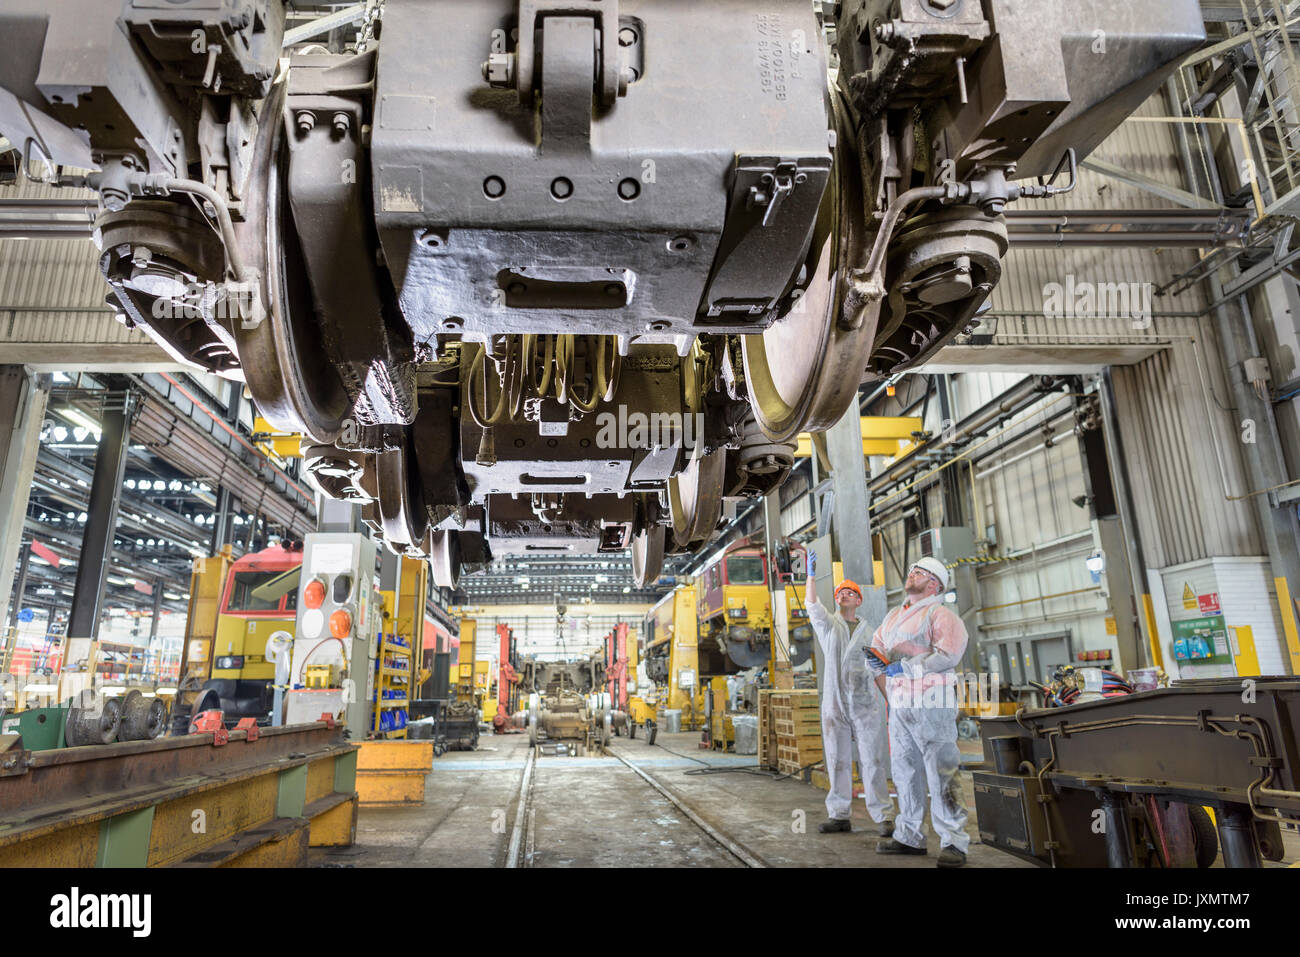 Locomotive engineers working on locomotive in train works - Stock Image